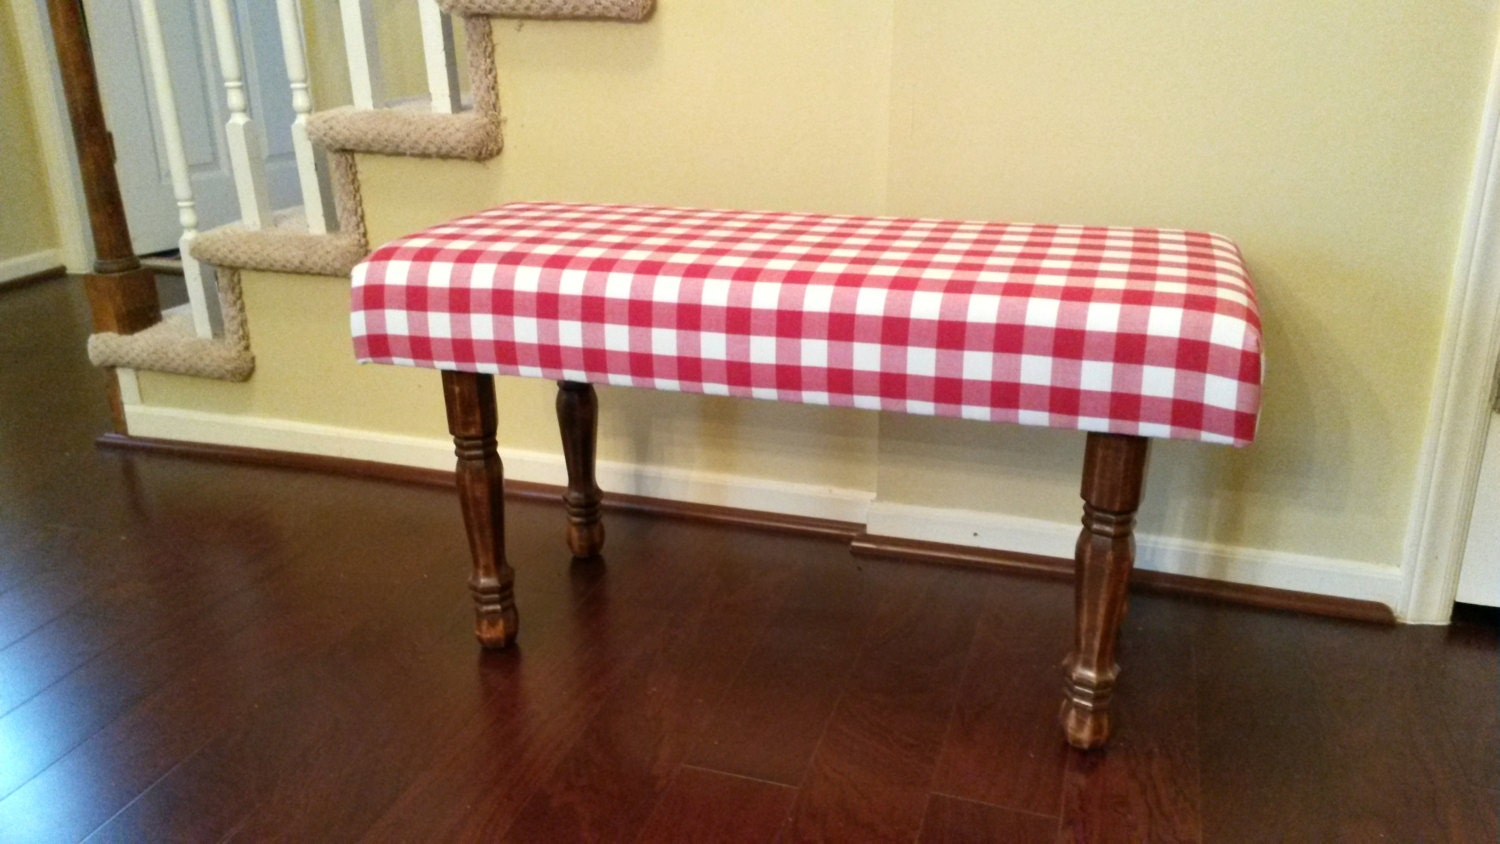 Upholstered bench red and white gingham White upholstered bench